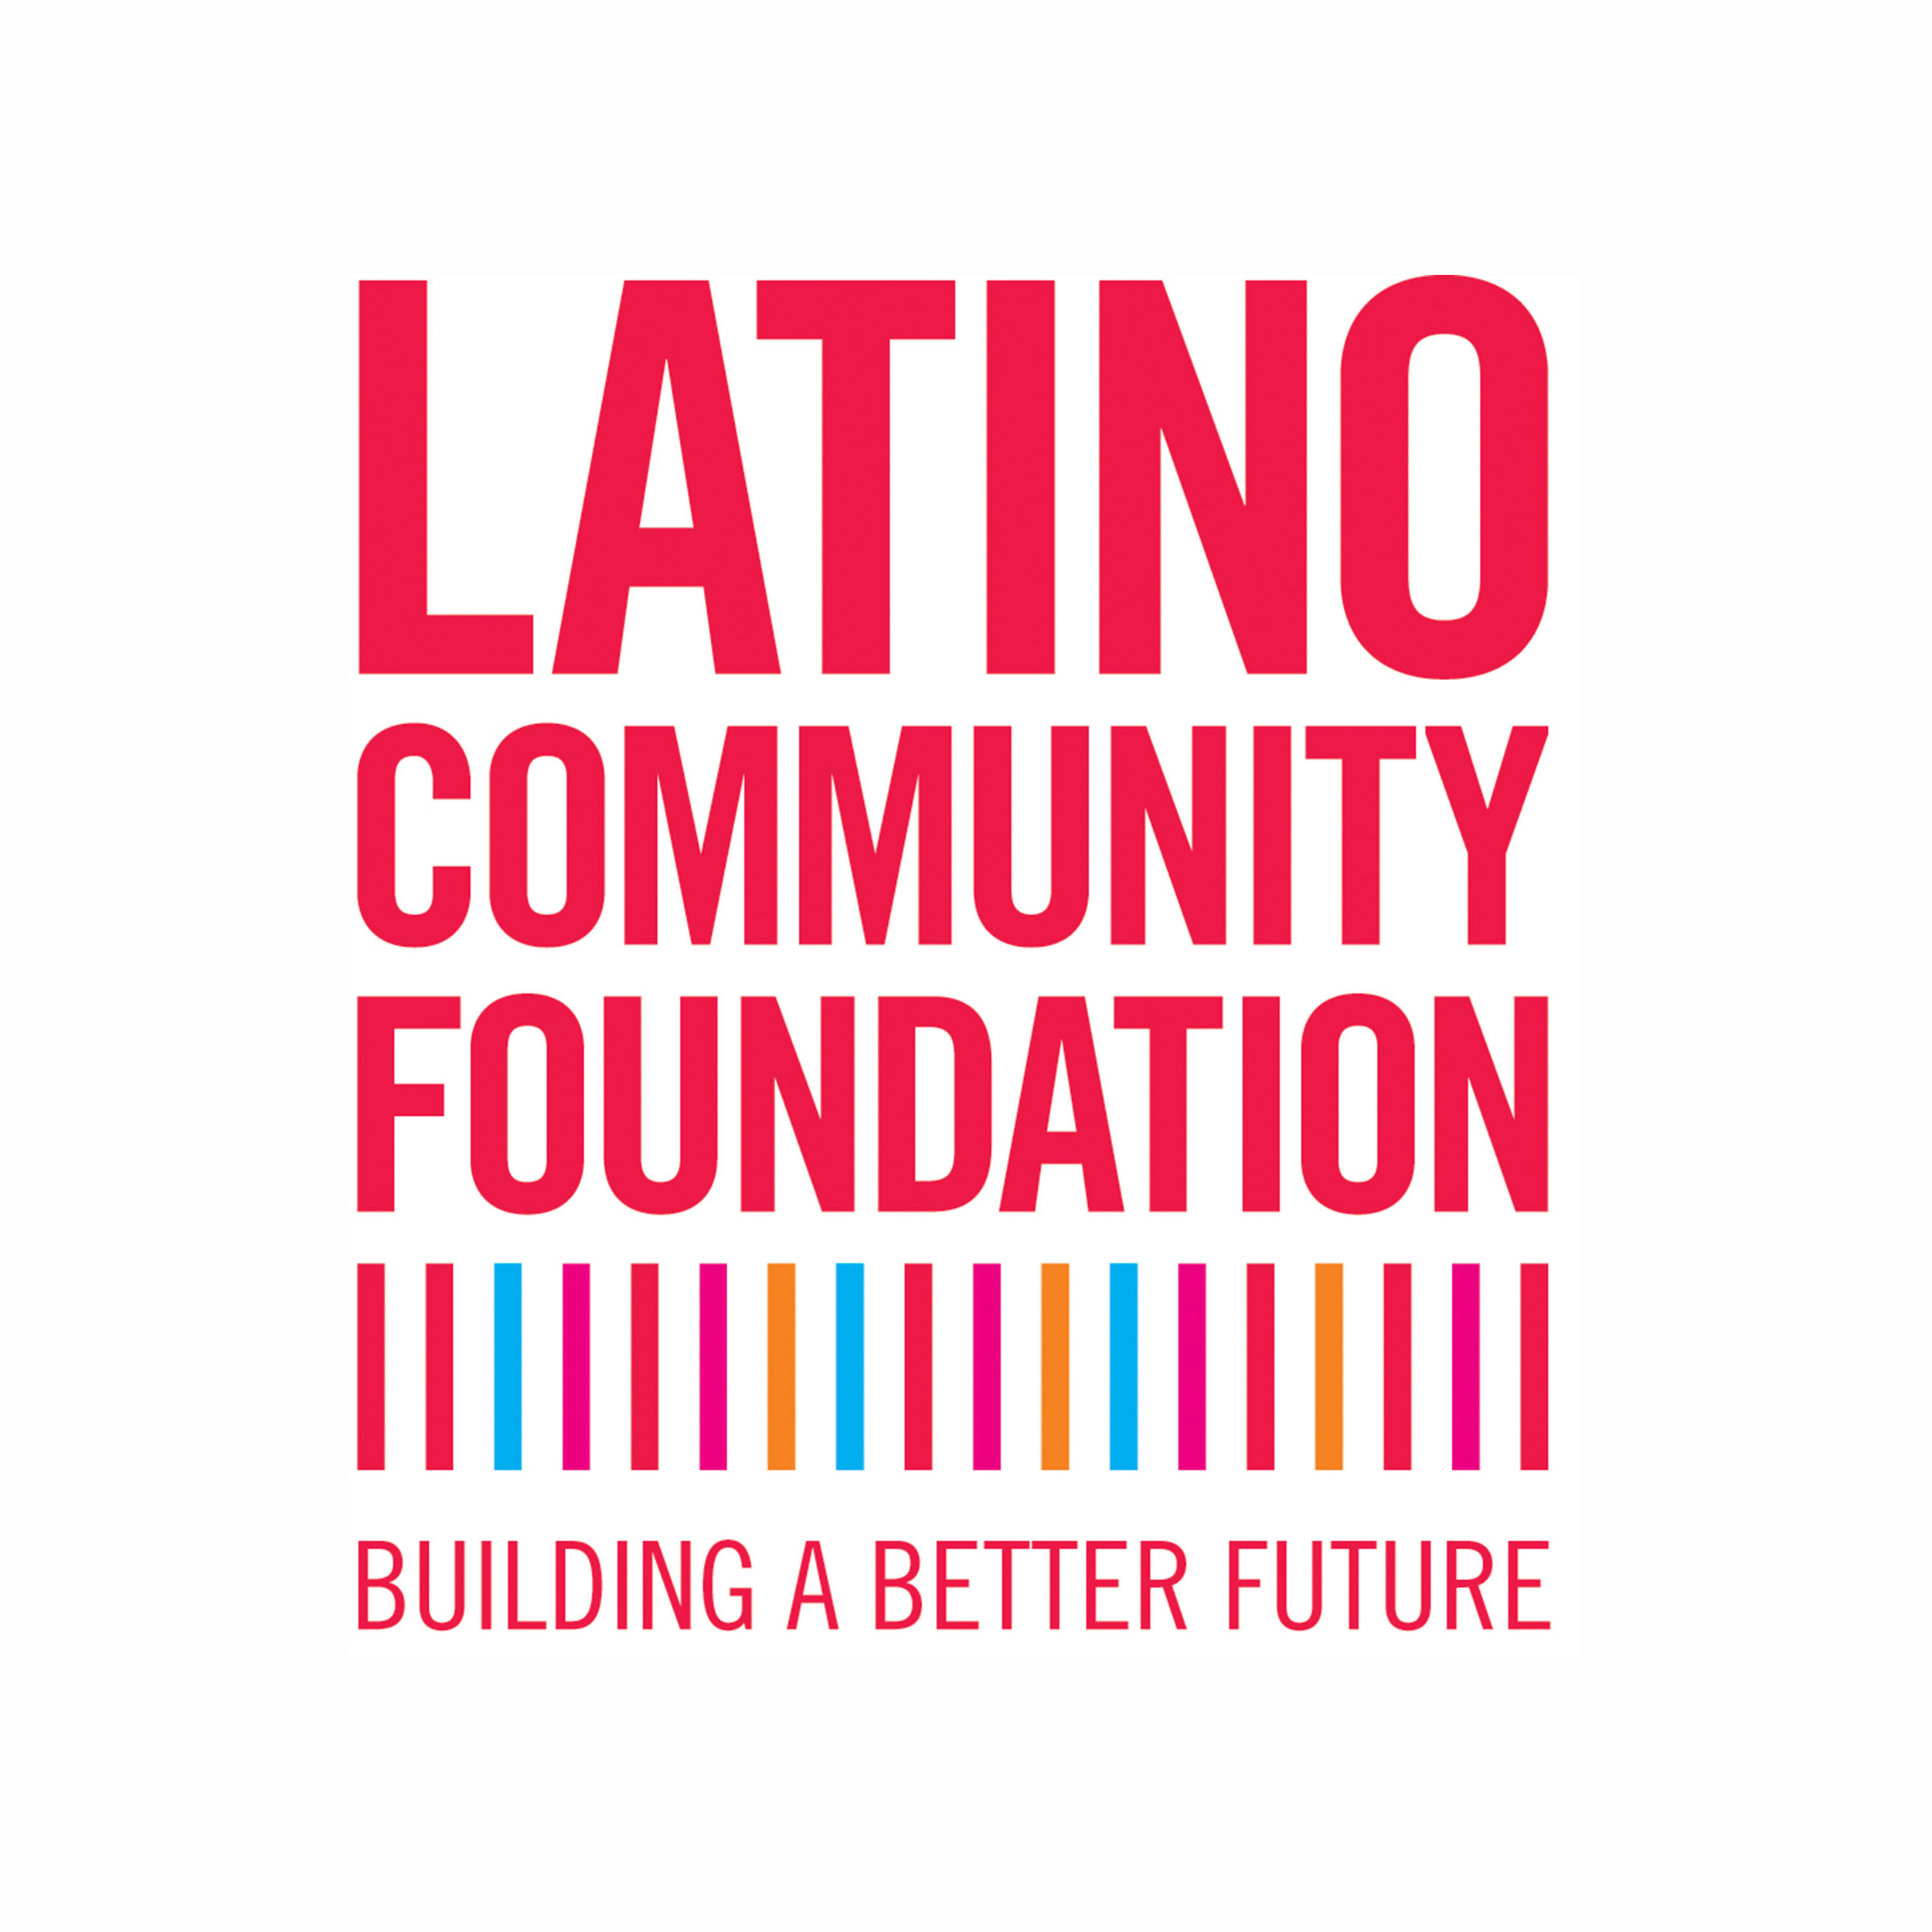 LatinoCommunityFoundation_background.jpg